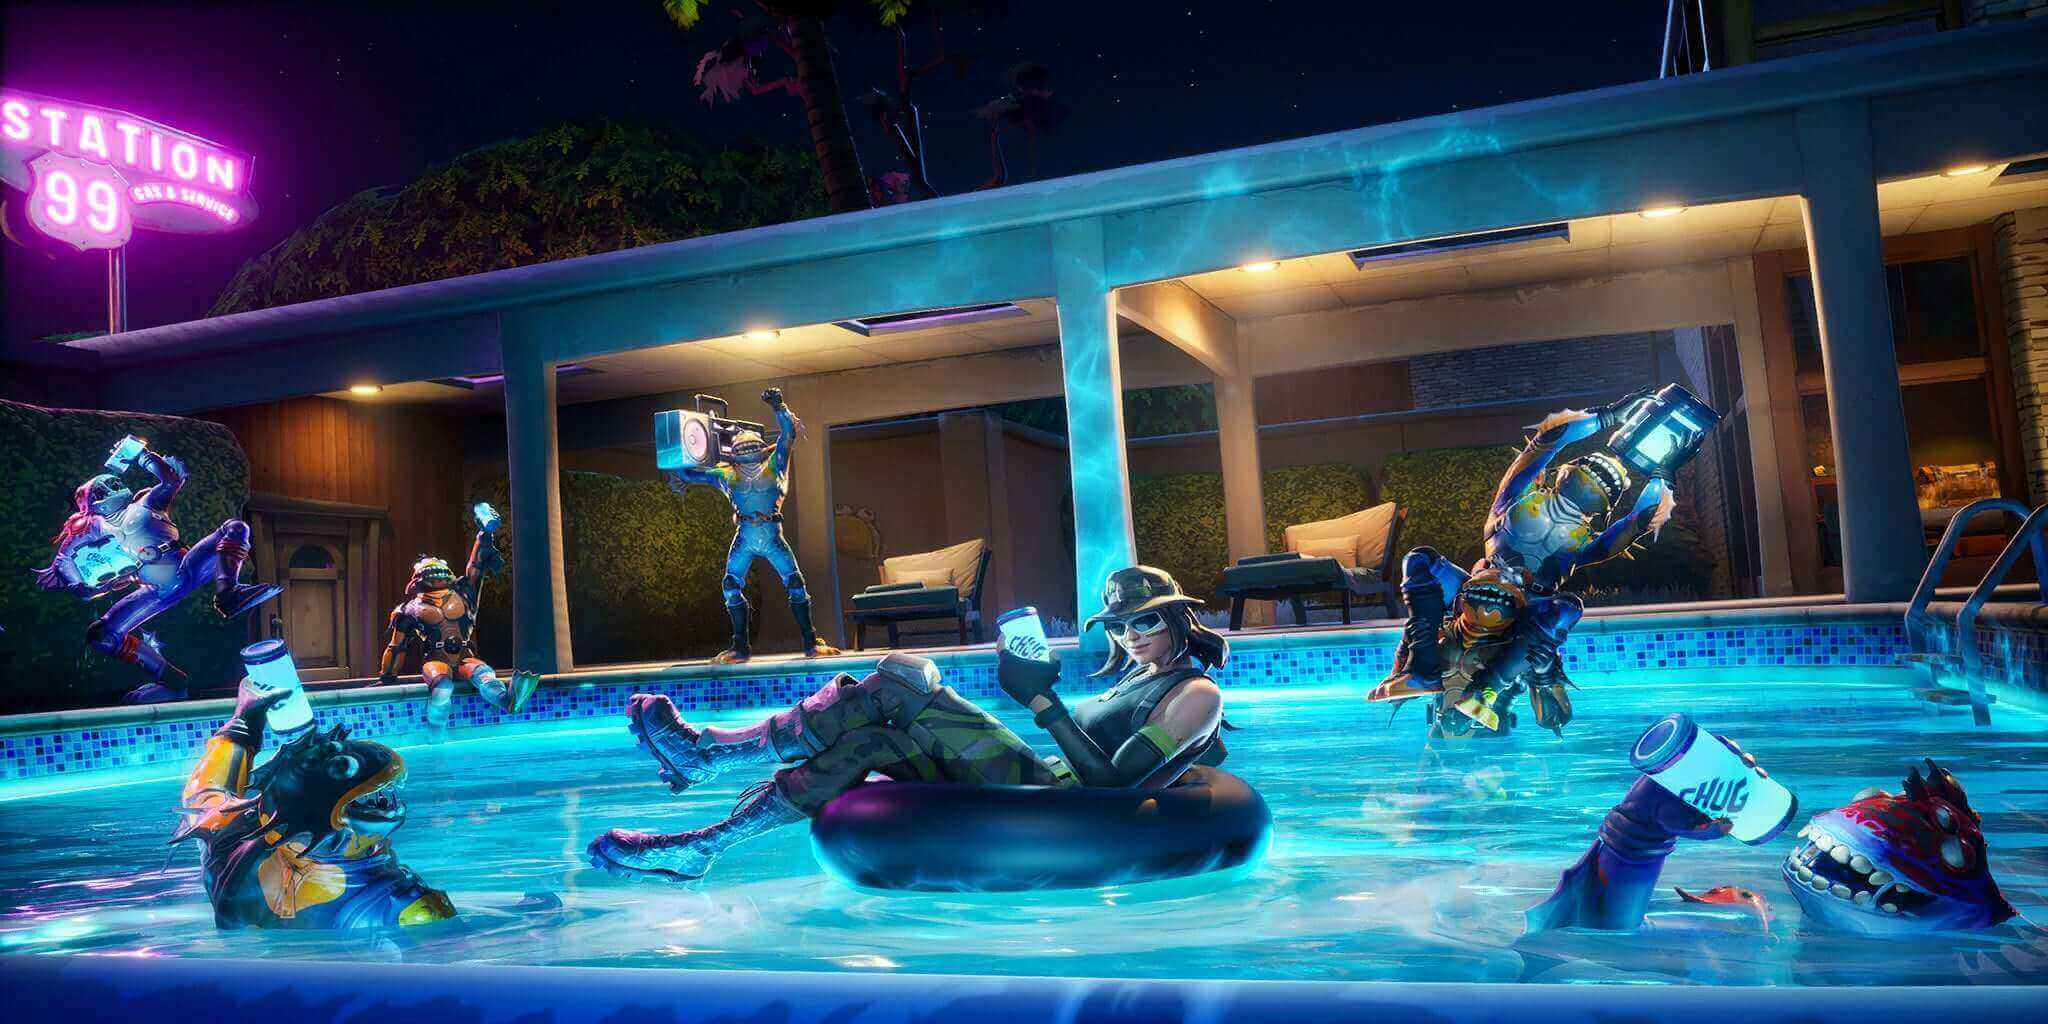 Epic reportedly testing new items including a Slurp Bazooka